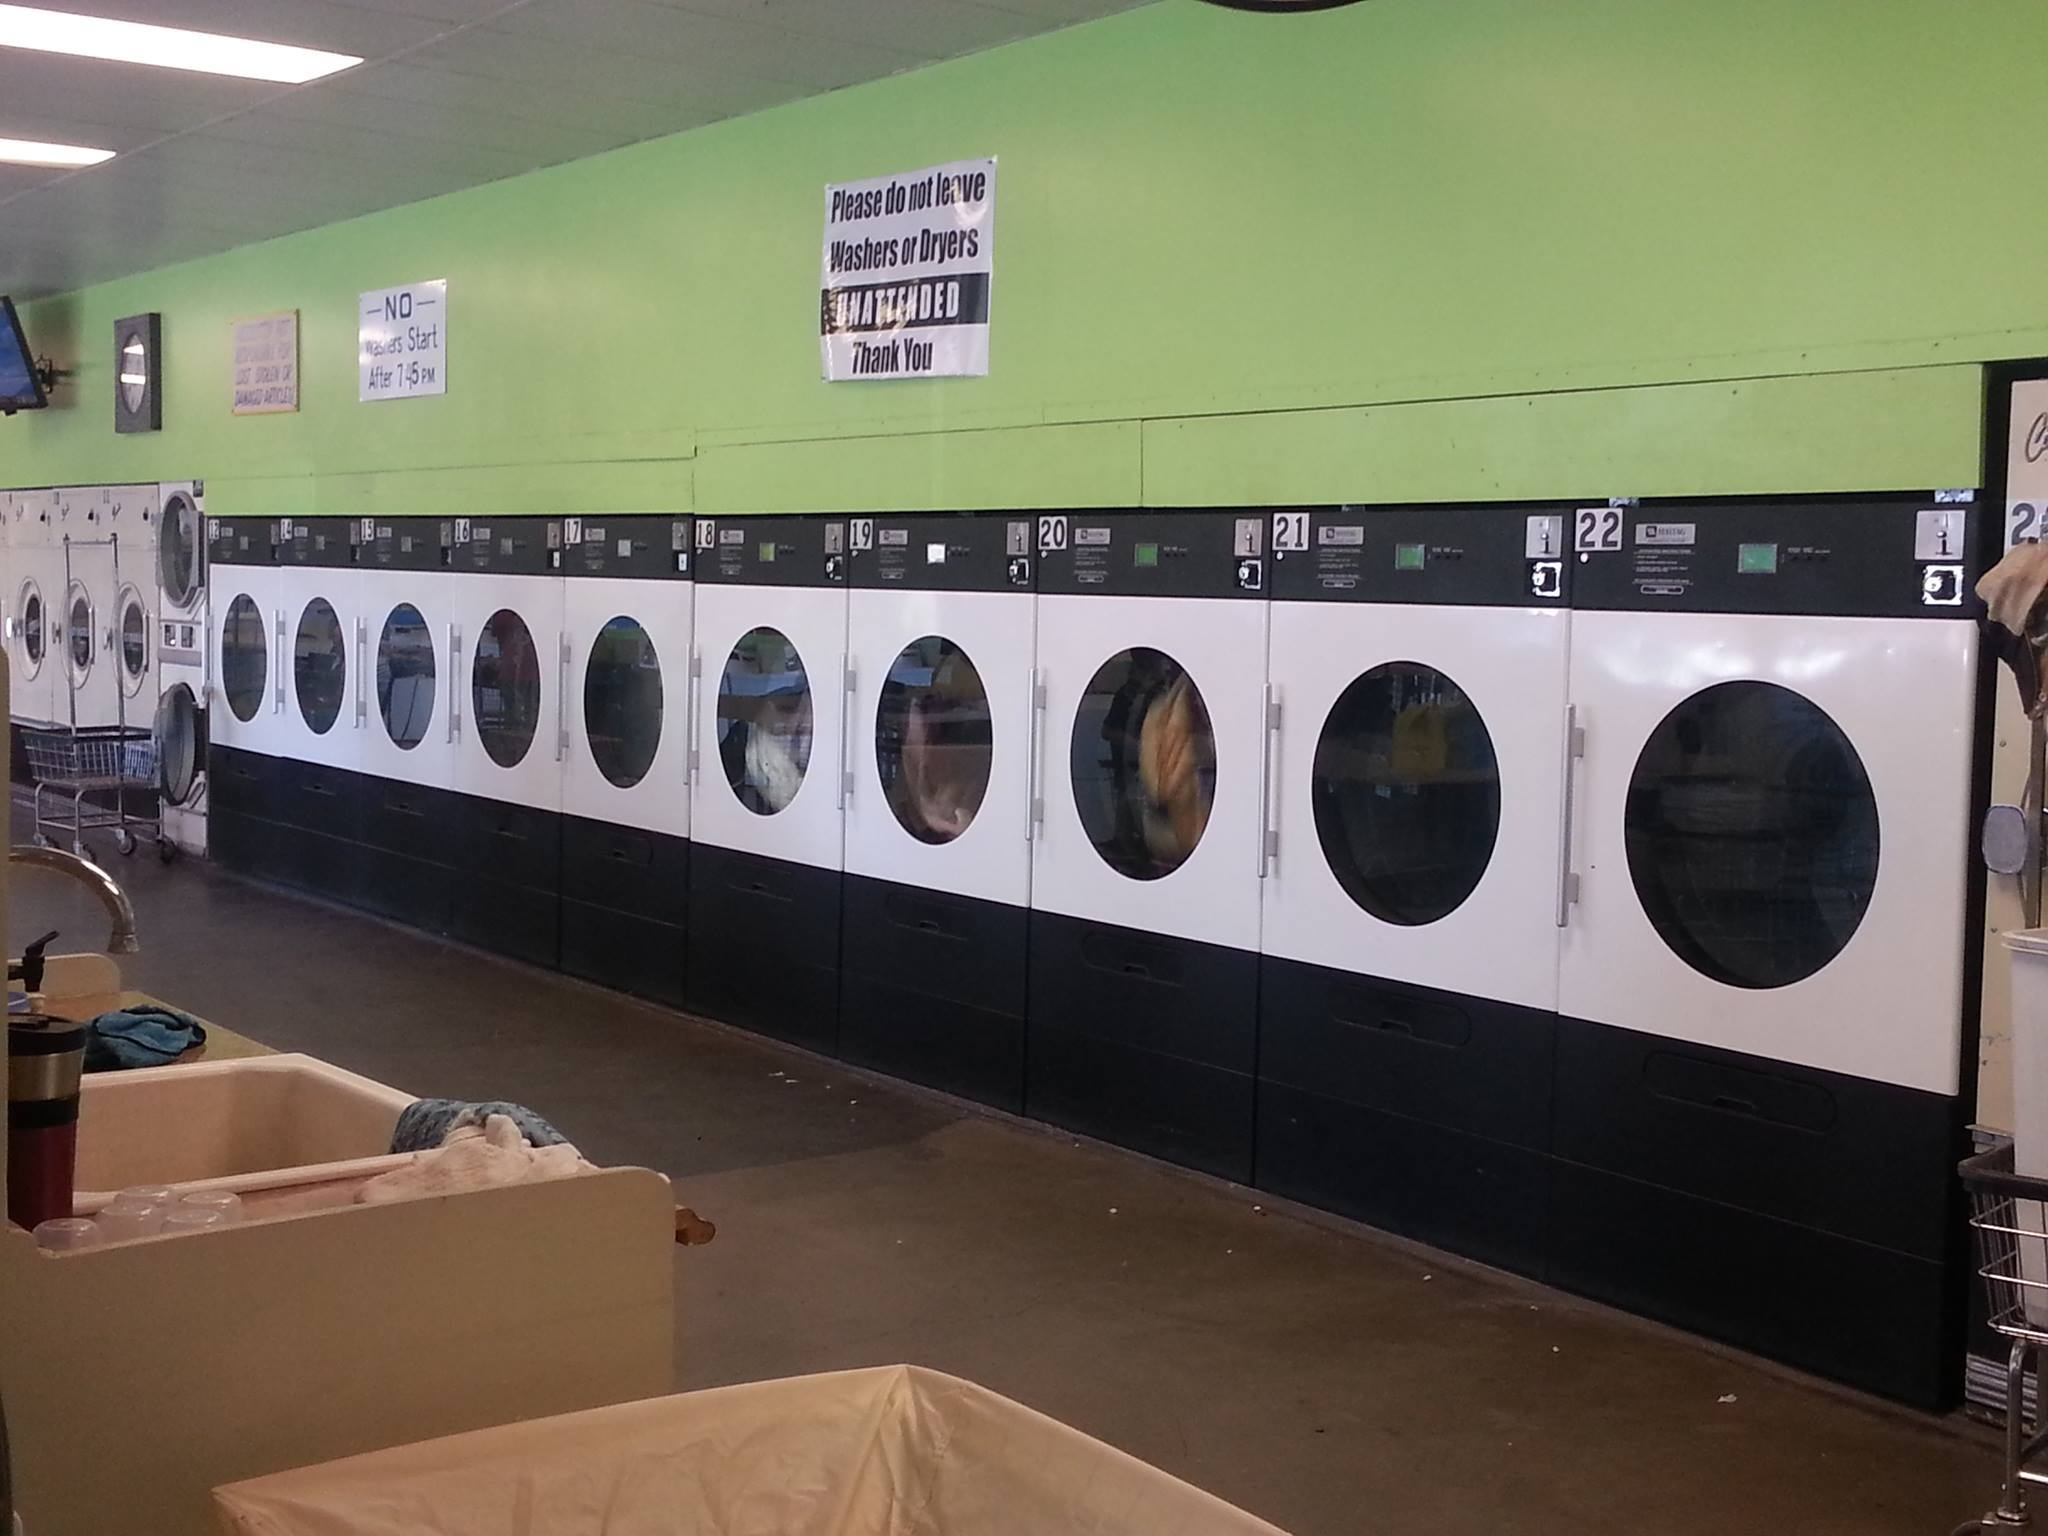 Get your clothes done FAST! Large dryers make it easy to get your clothes dry in a hurry.